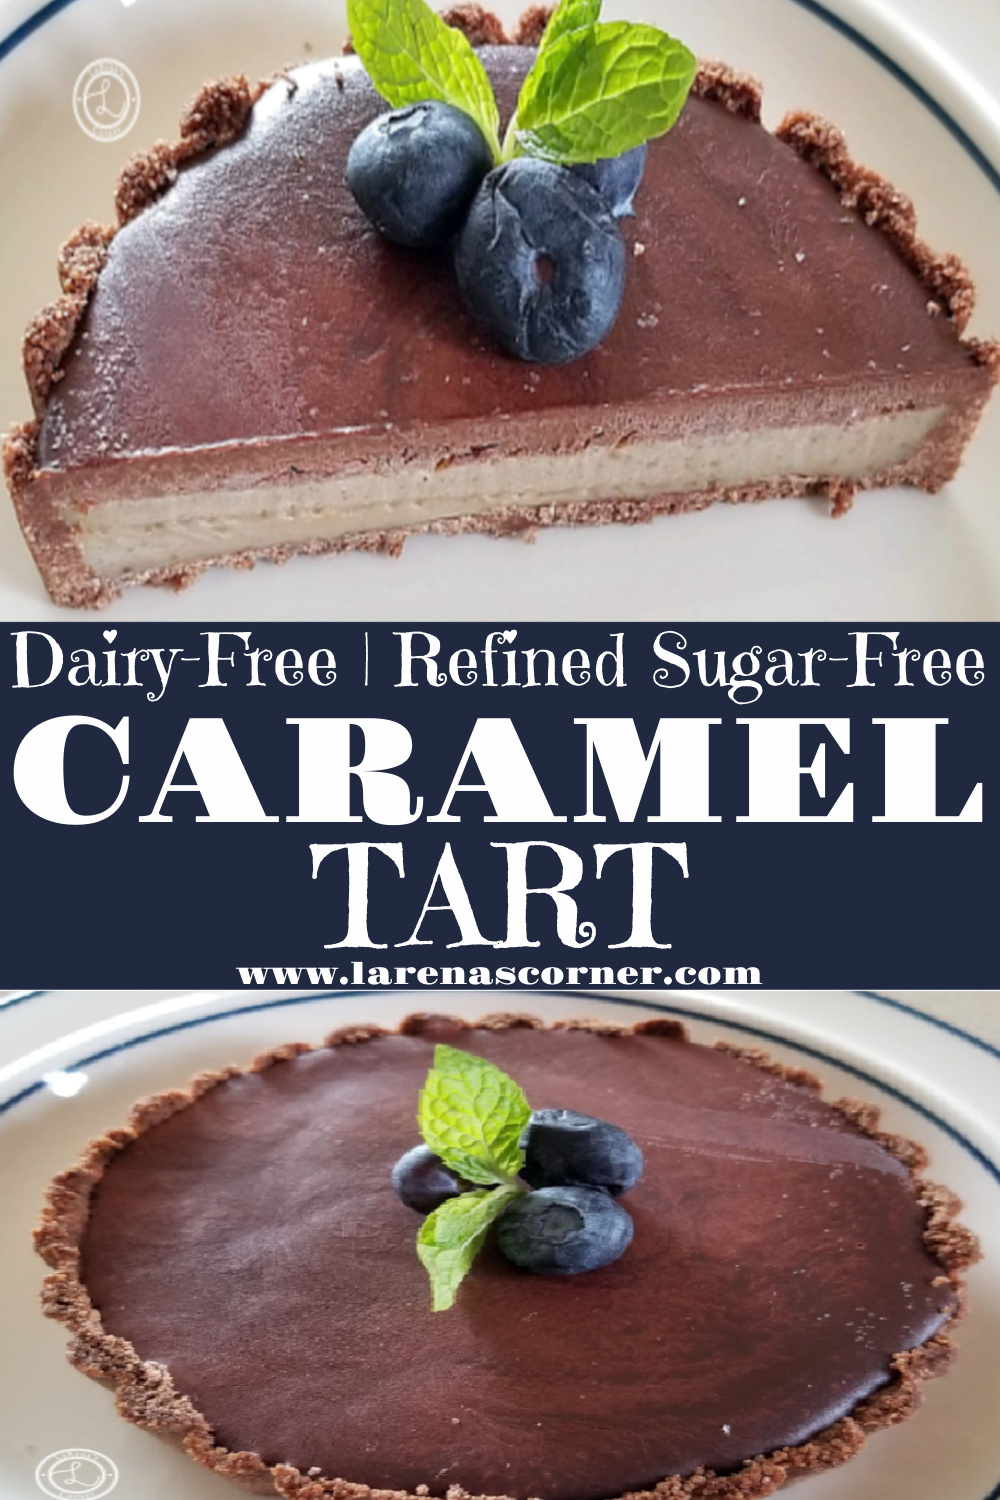 2 pictures of a tart. One of a tart cut in half. One of the whole chocolate ganache topped tart